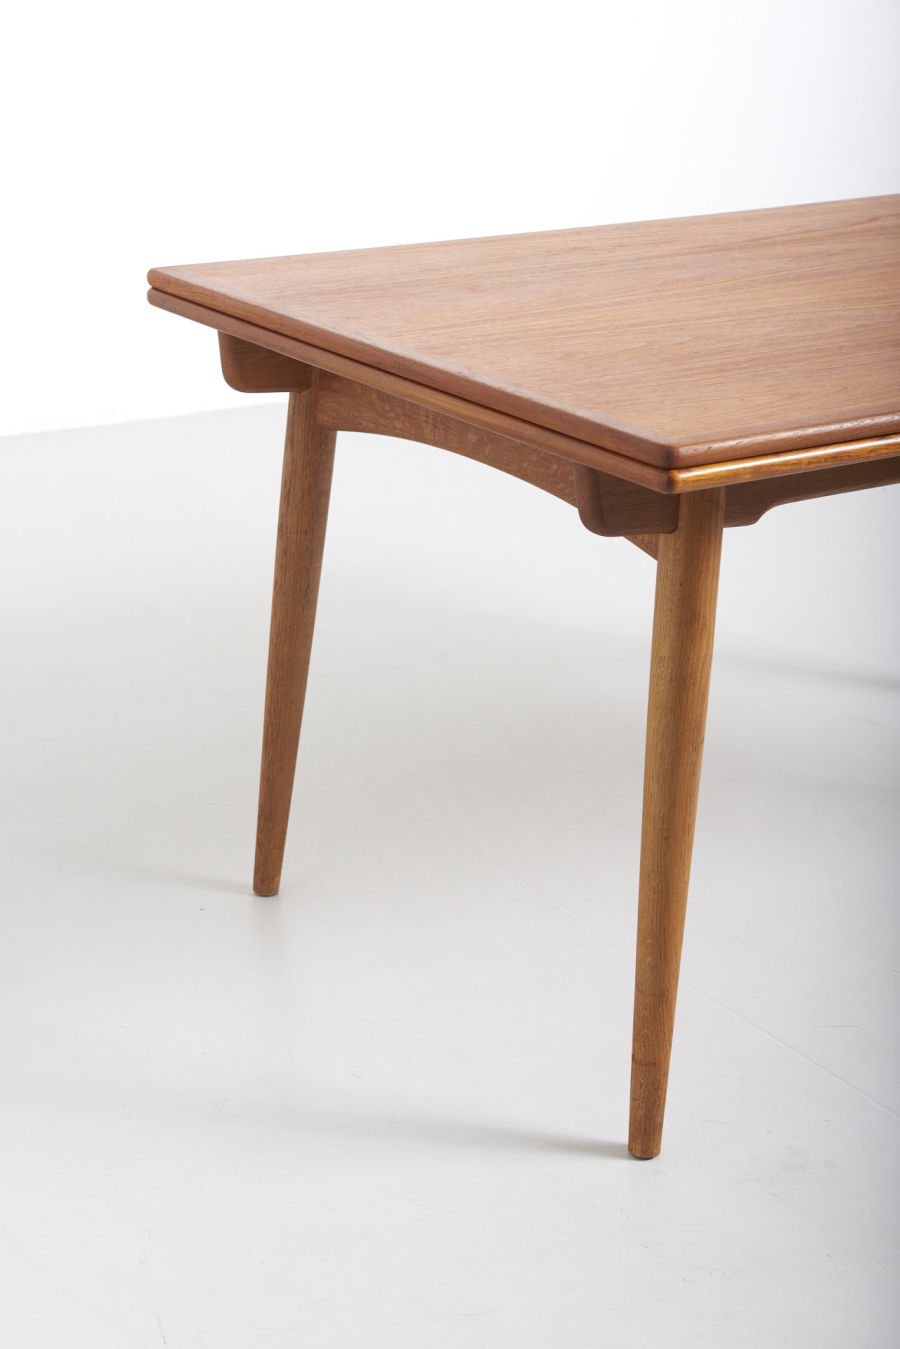 modestfurniture-vintage-1869-hans-wegner-dining-table-andreas-tuck-at-31204